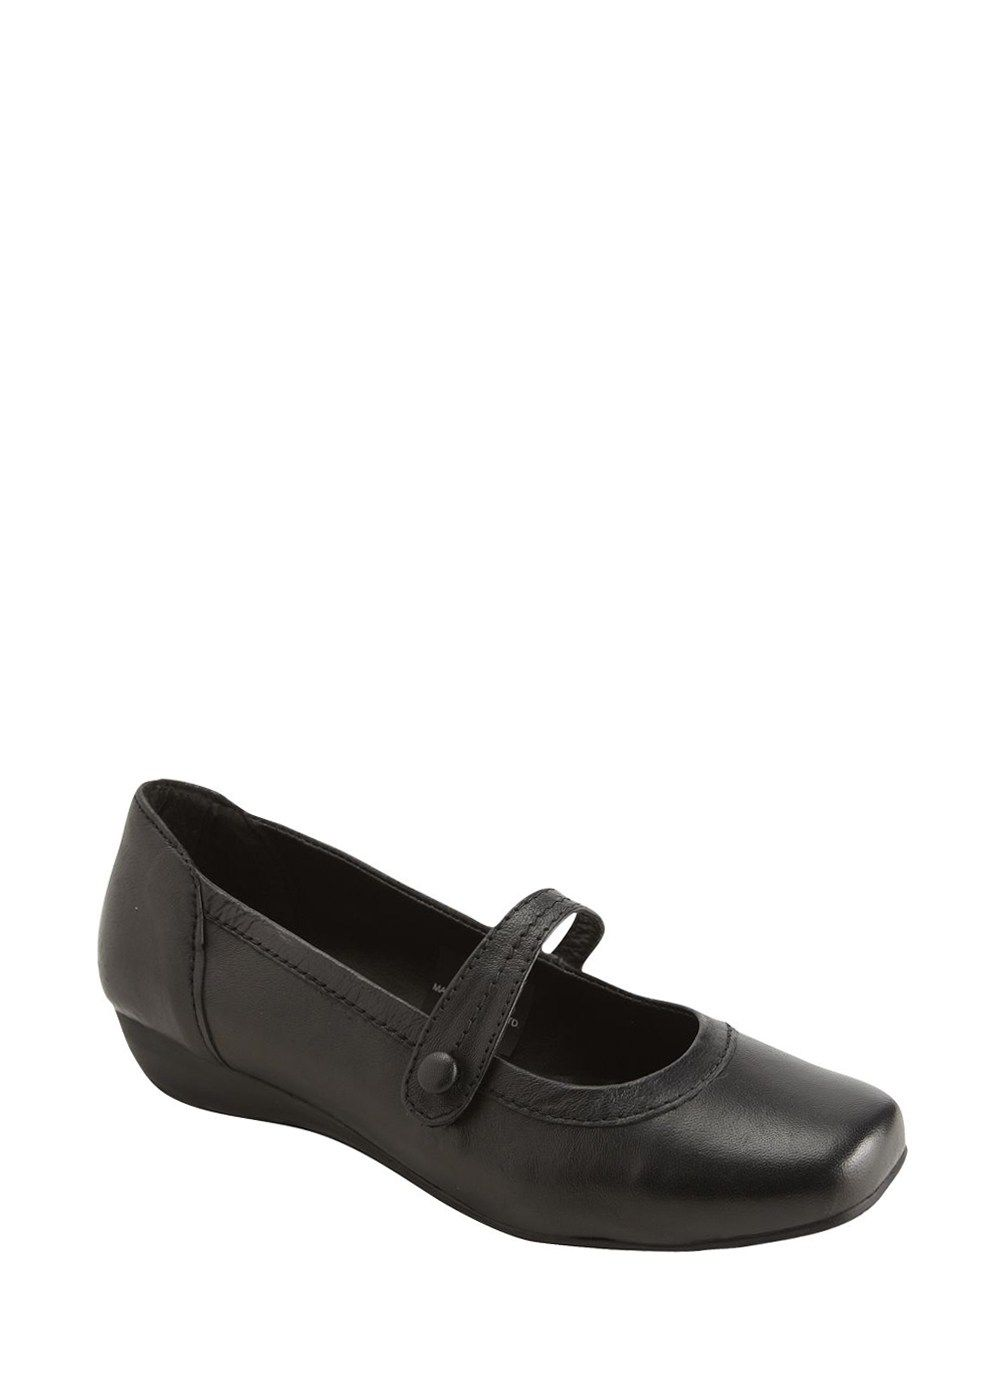 040125a2ba66 Soleflex Real Leather Wide Fit Mary-Jane Shoes - Matalan